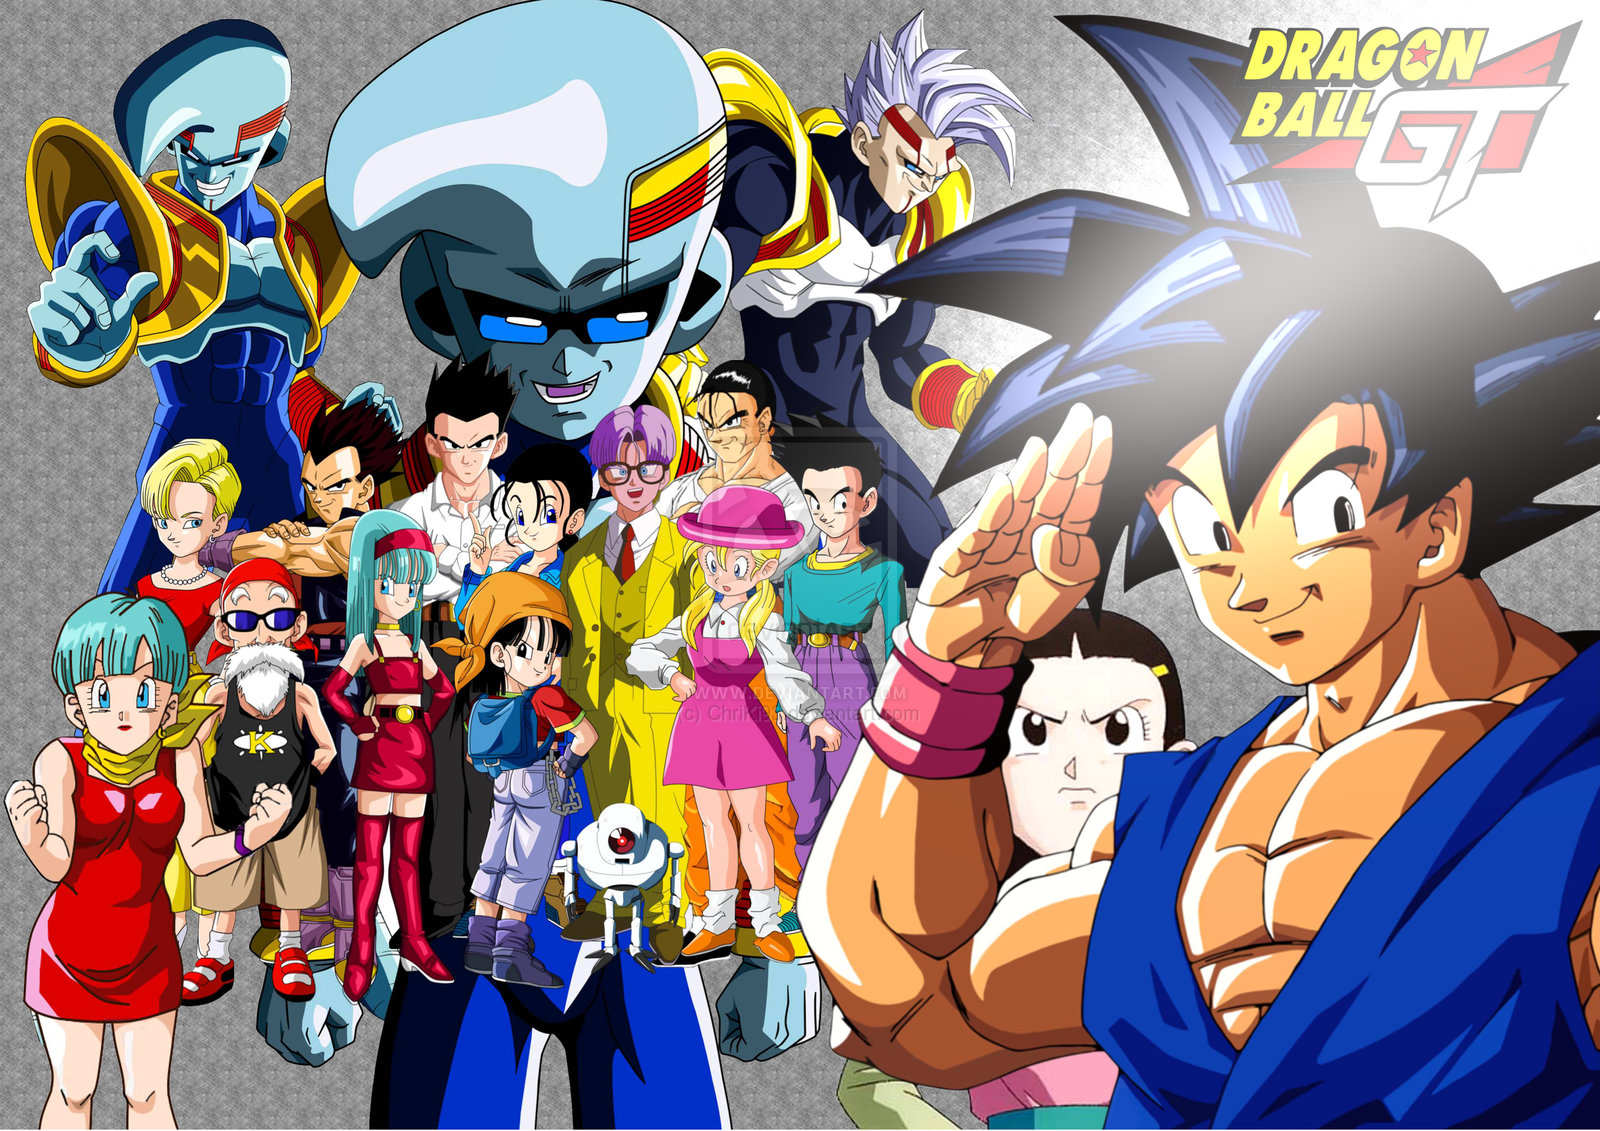 Download Dragon Ball Gt Games For Apps Directories 1600x1131